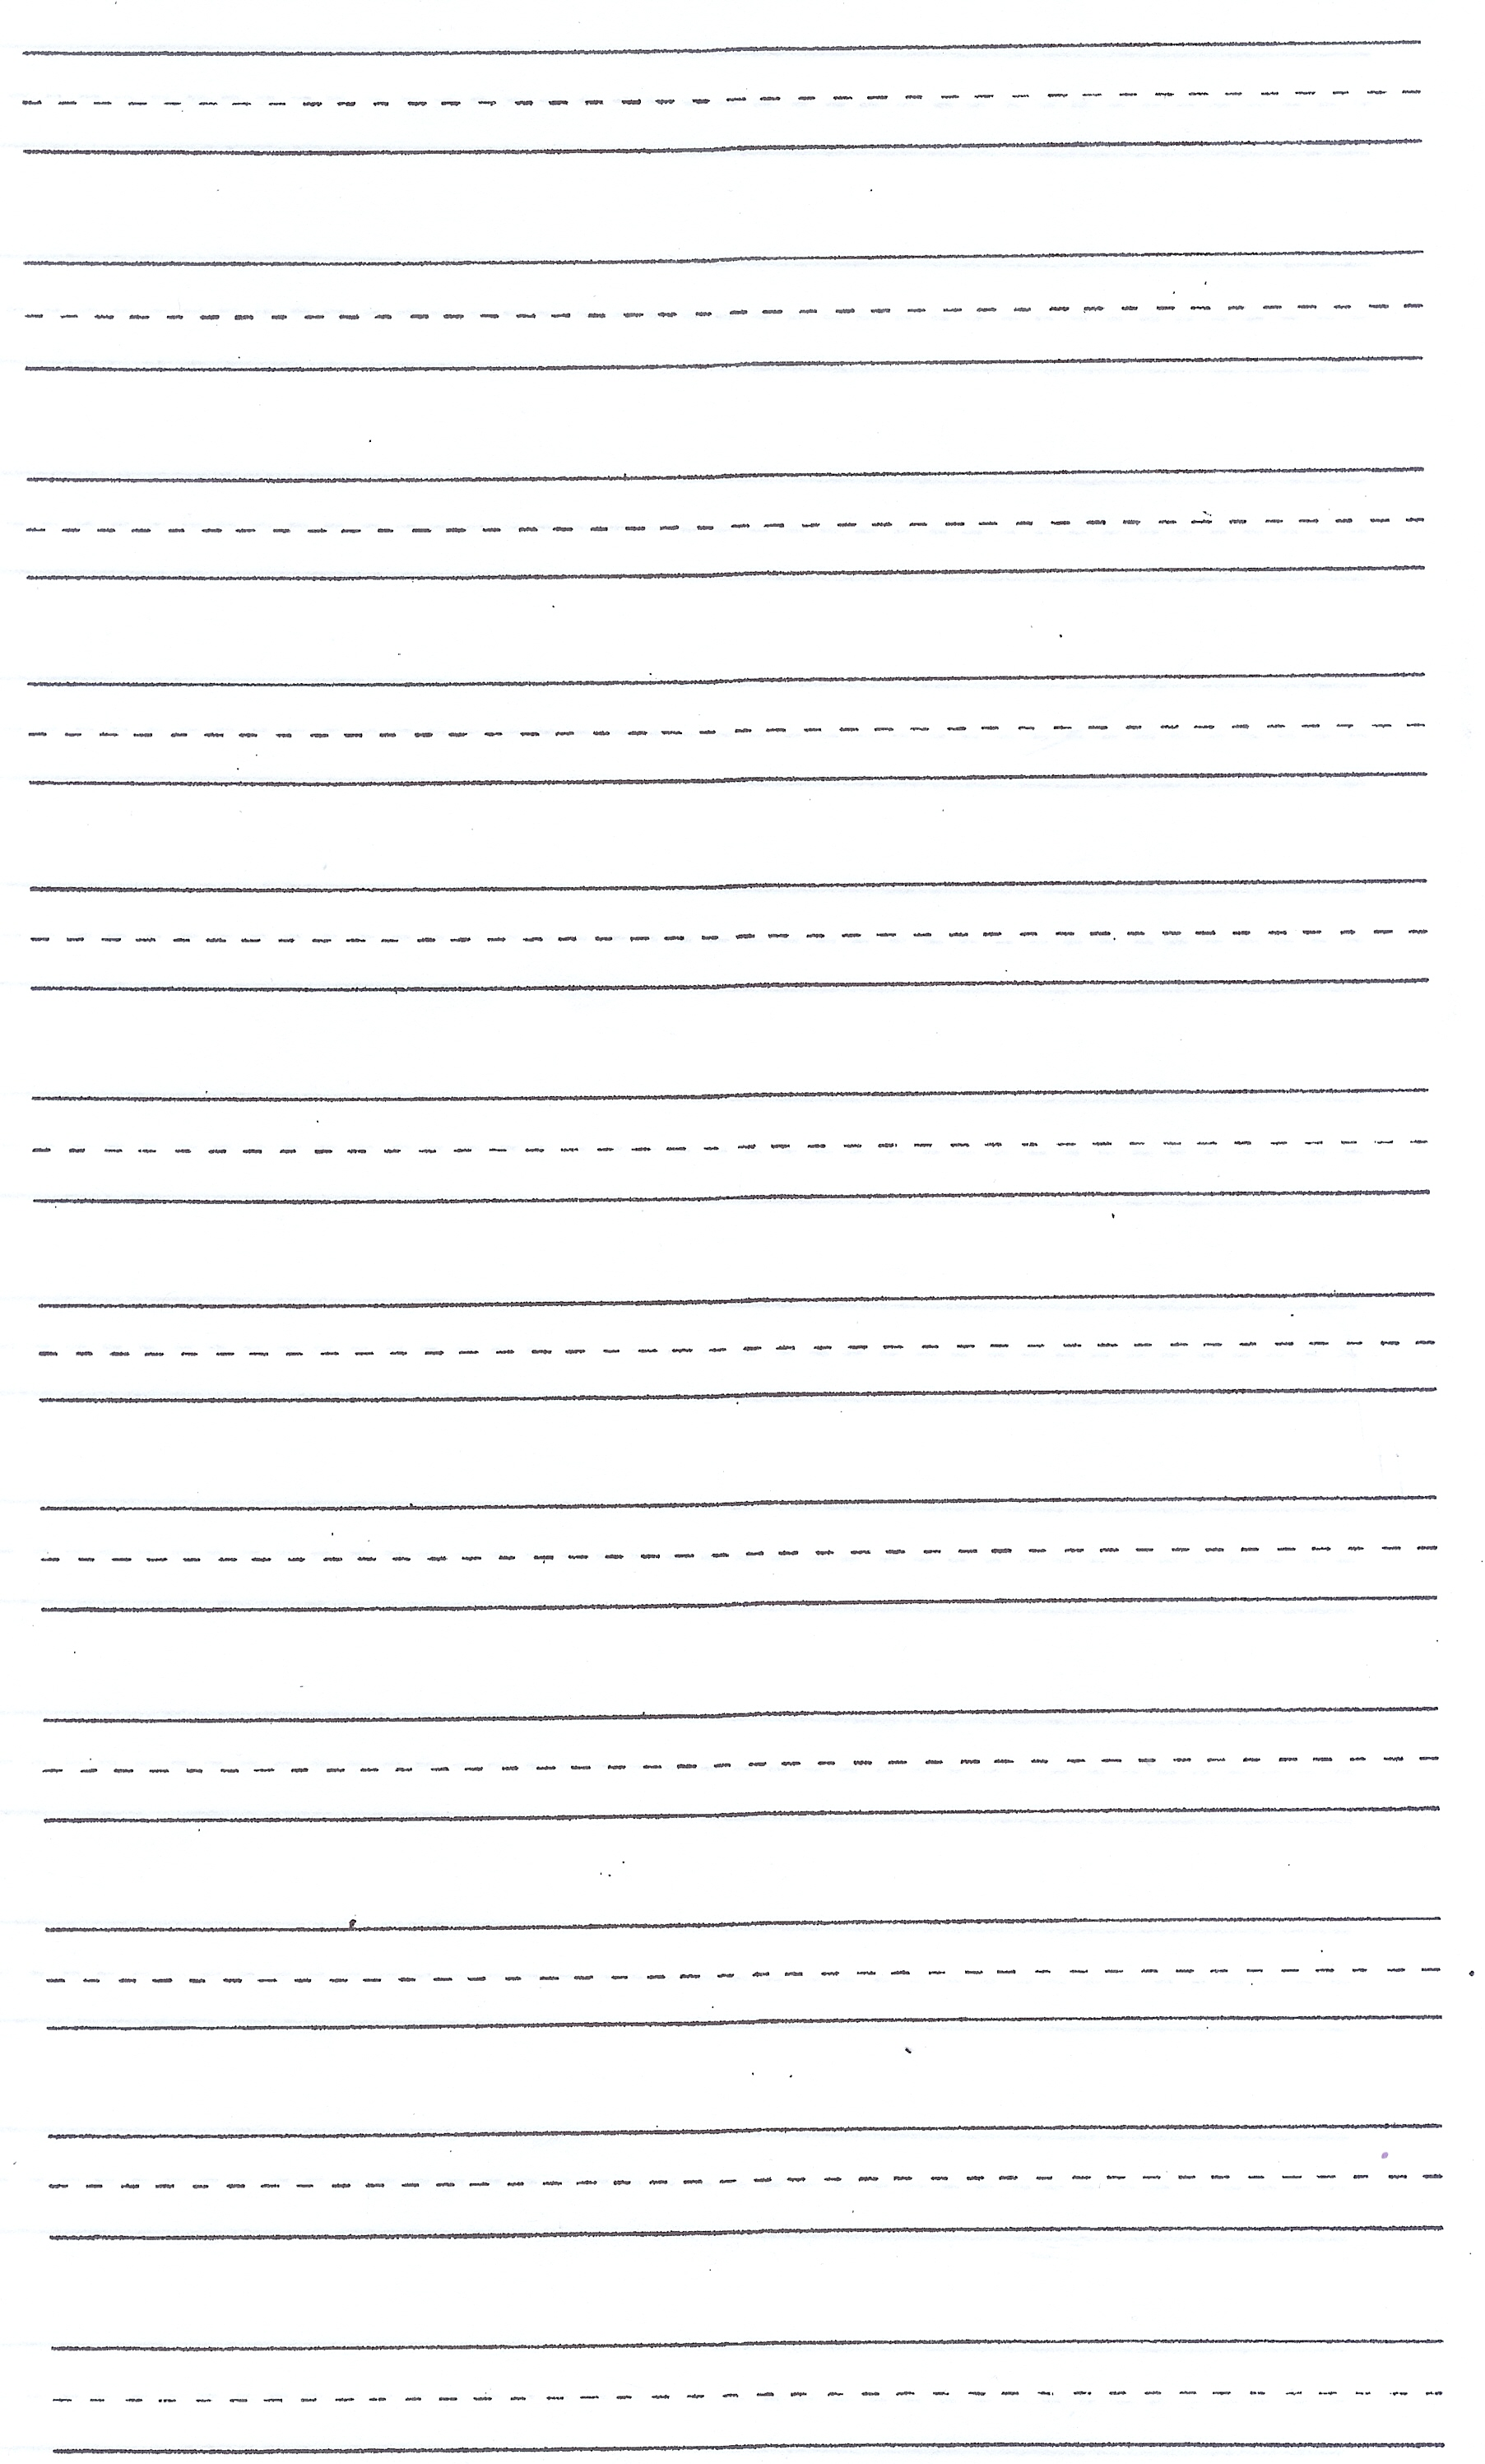 Blank Writing Sheets Document